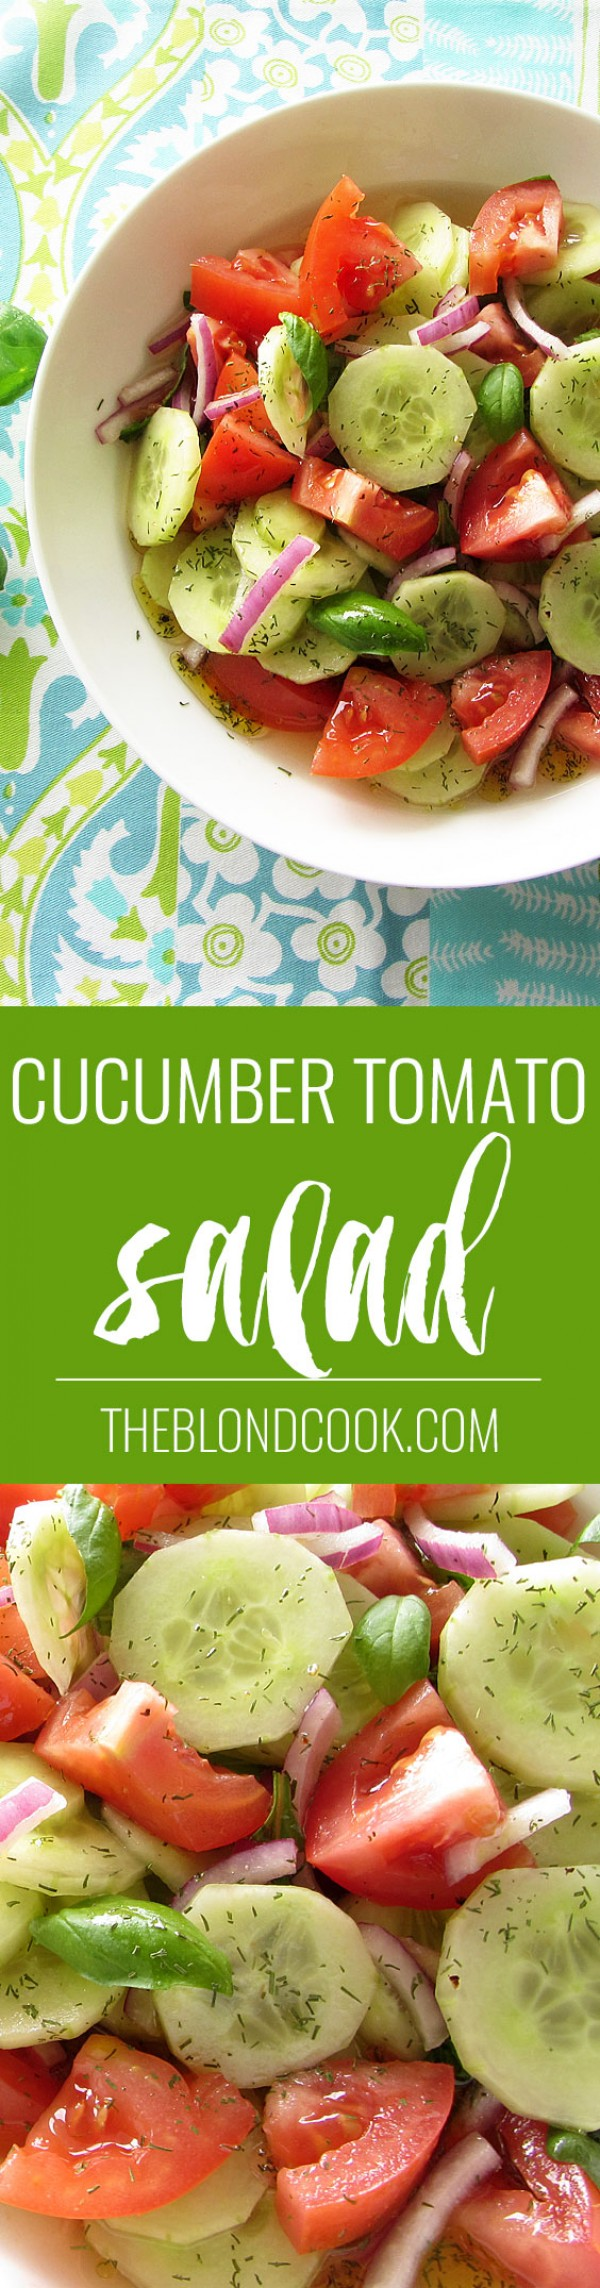 Get the recipe Cucumber Tomato Salad @recipes_to_go